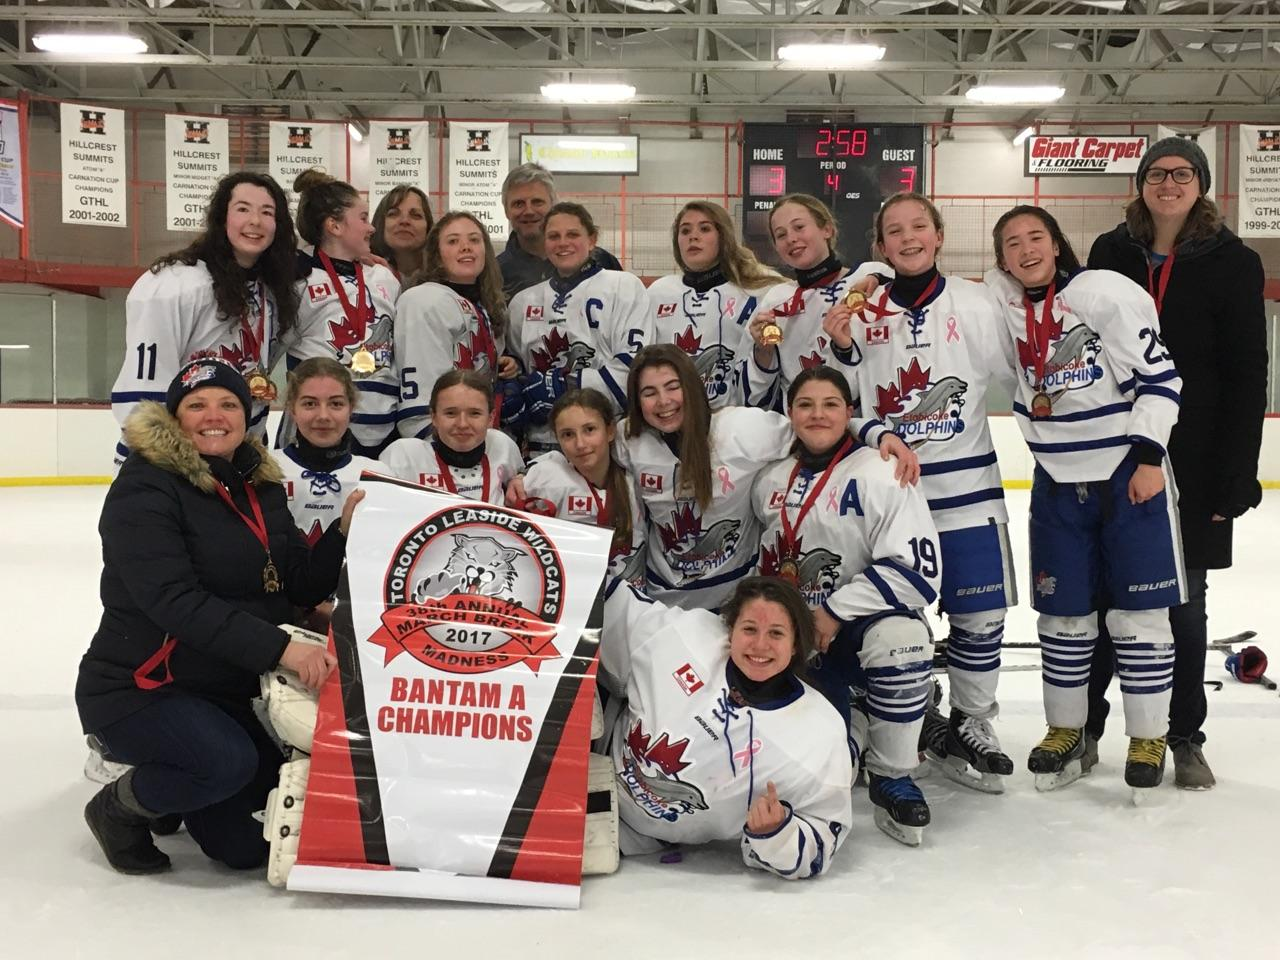 Bantam A Wins Gold at 2017 Leaside Wildcats March Madness Tournament